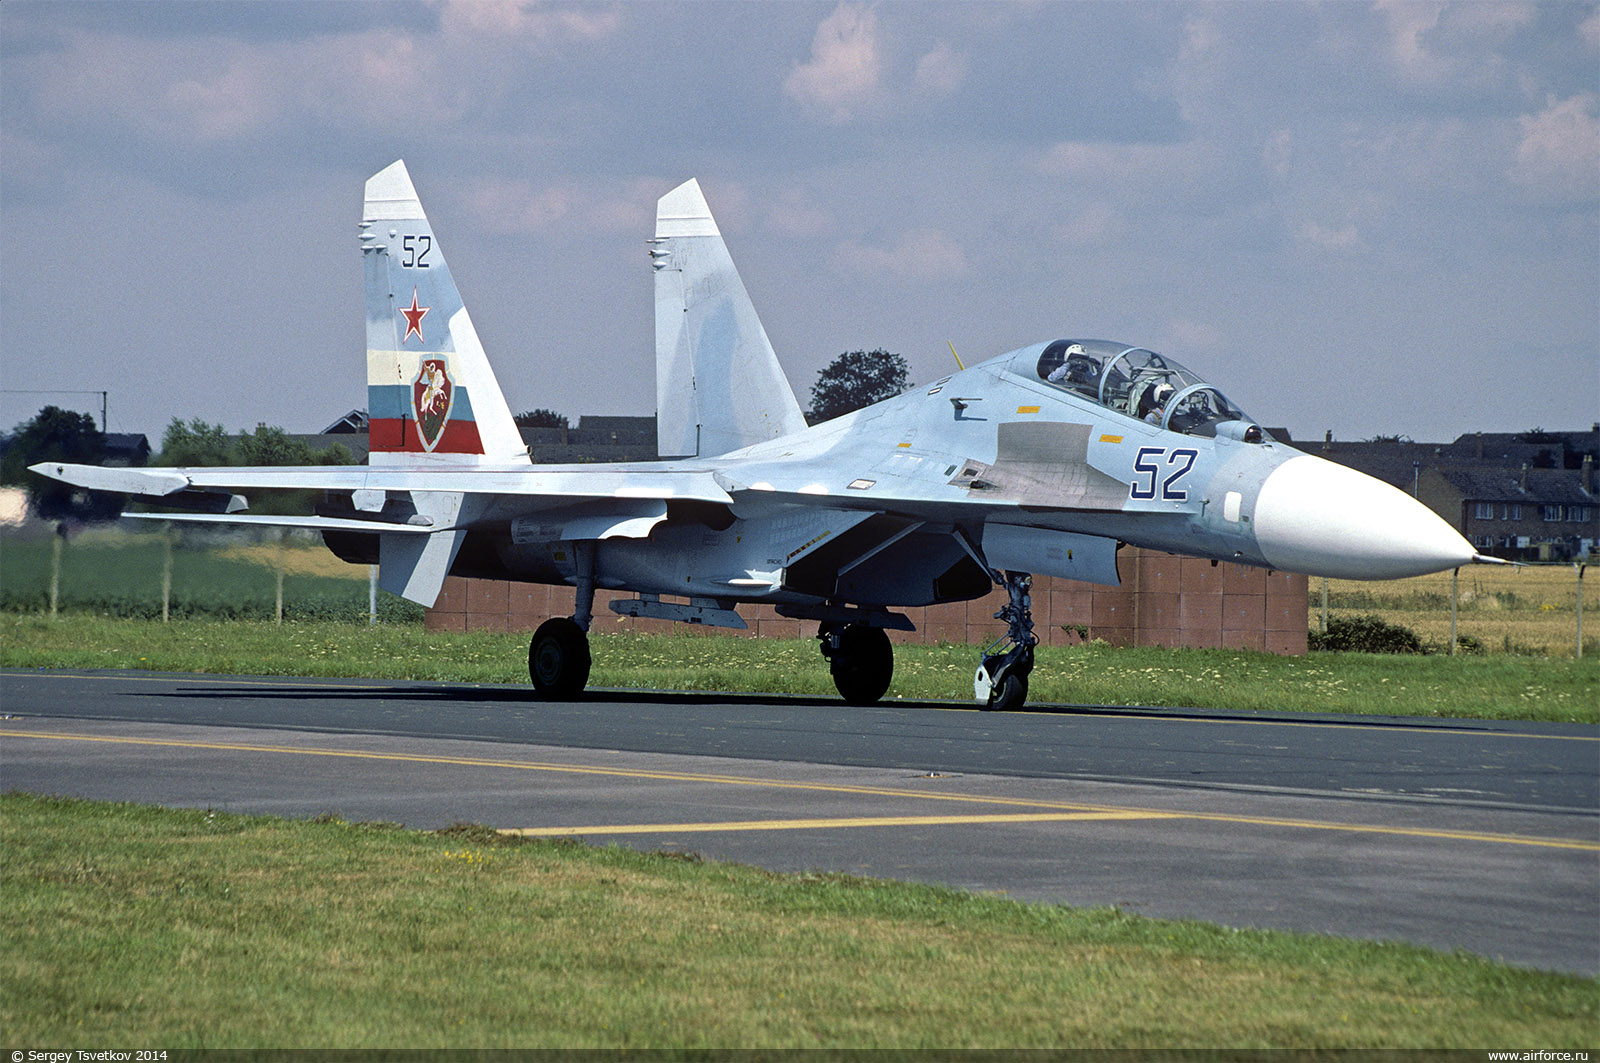 http://www.airforce.ru/content/attachments/60200d1418581297-s_tsvetkov_su-27ub_52_1600.jpg